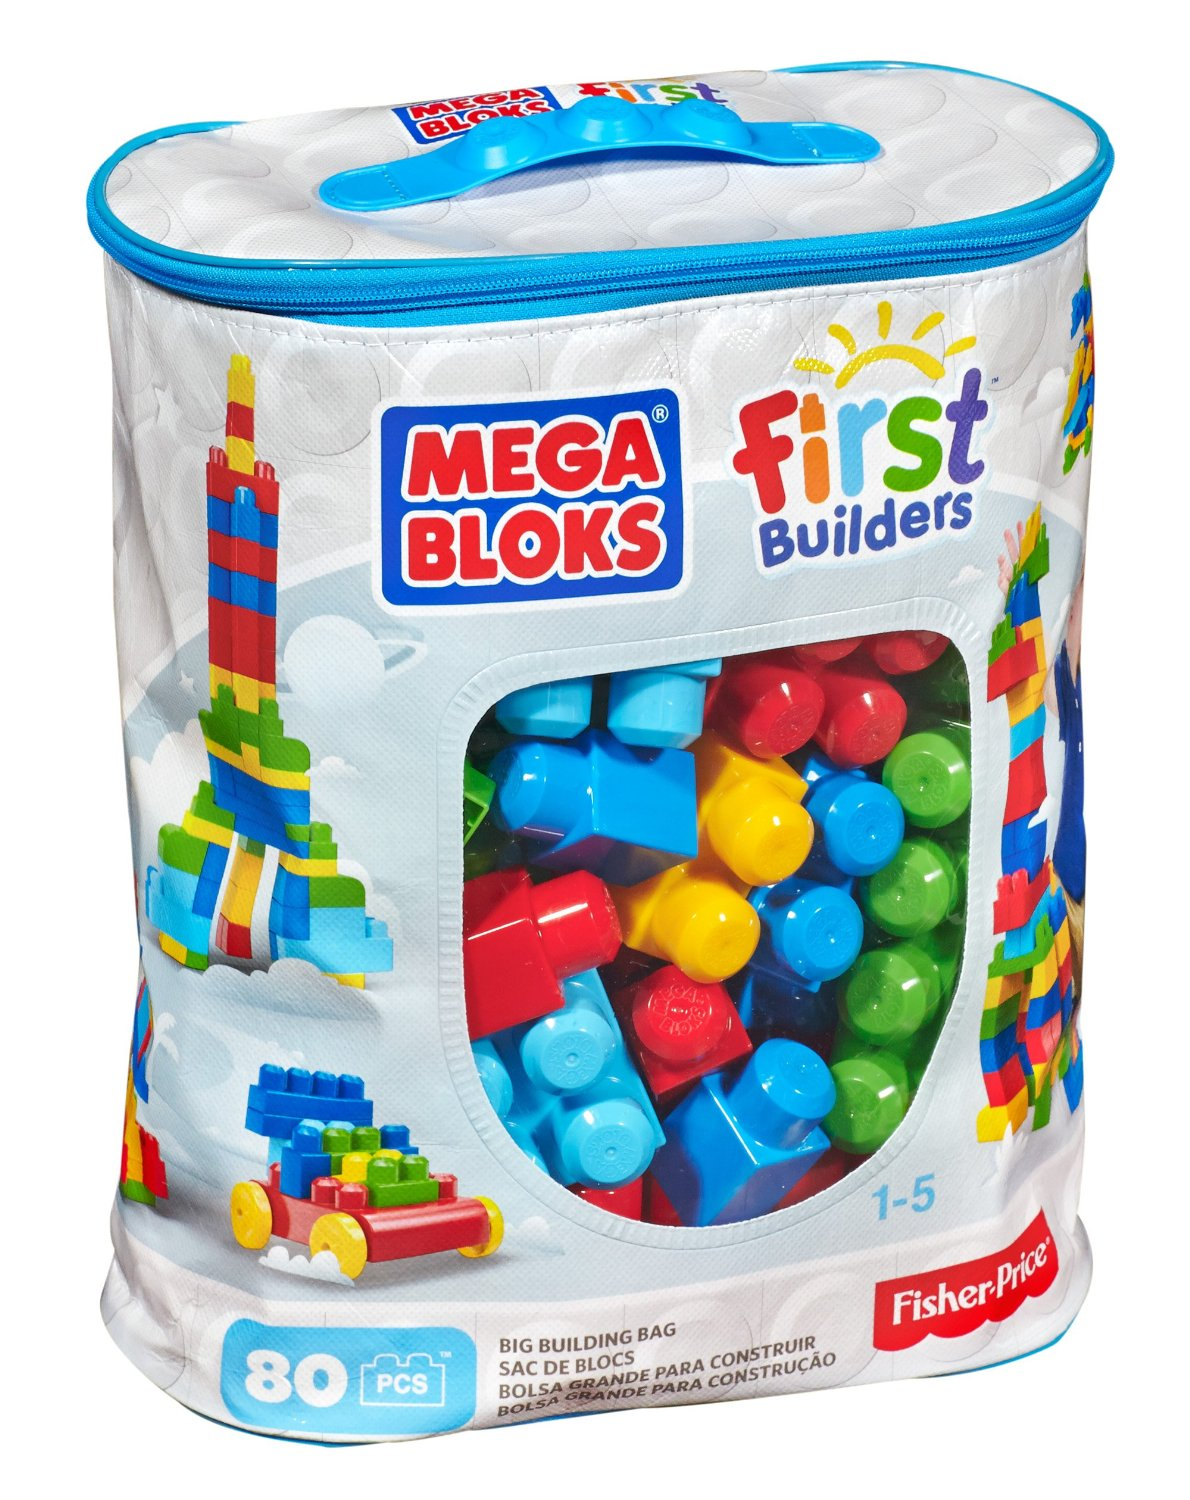 Walmart Toys 5 Years Old : Lovetobemrsb best toys for year olds